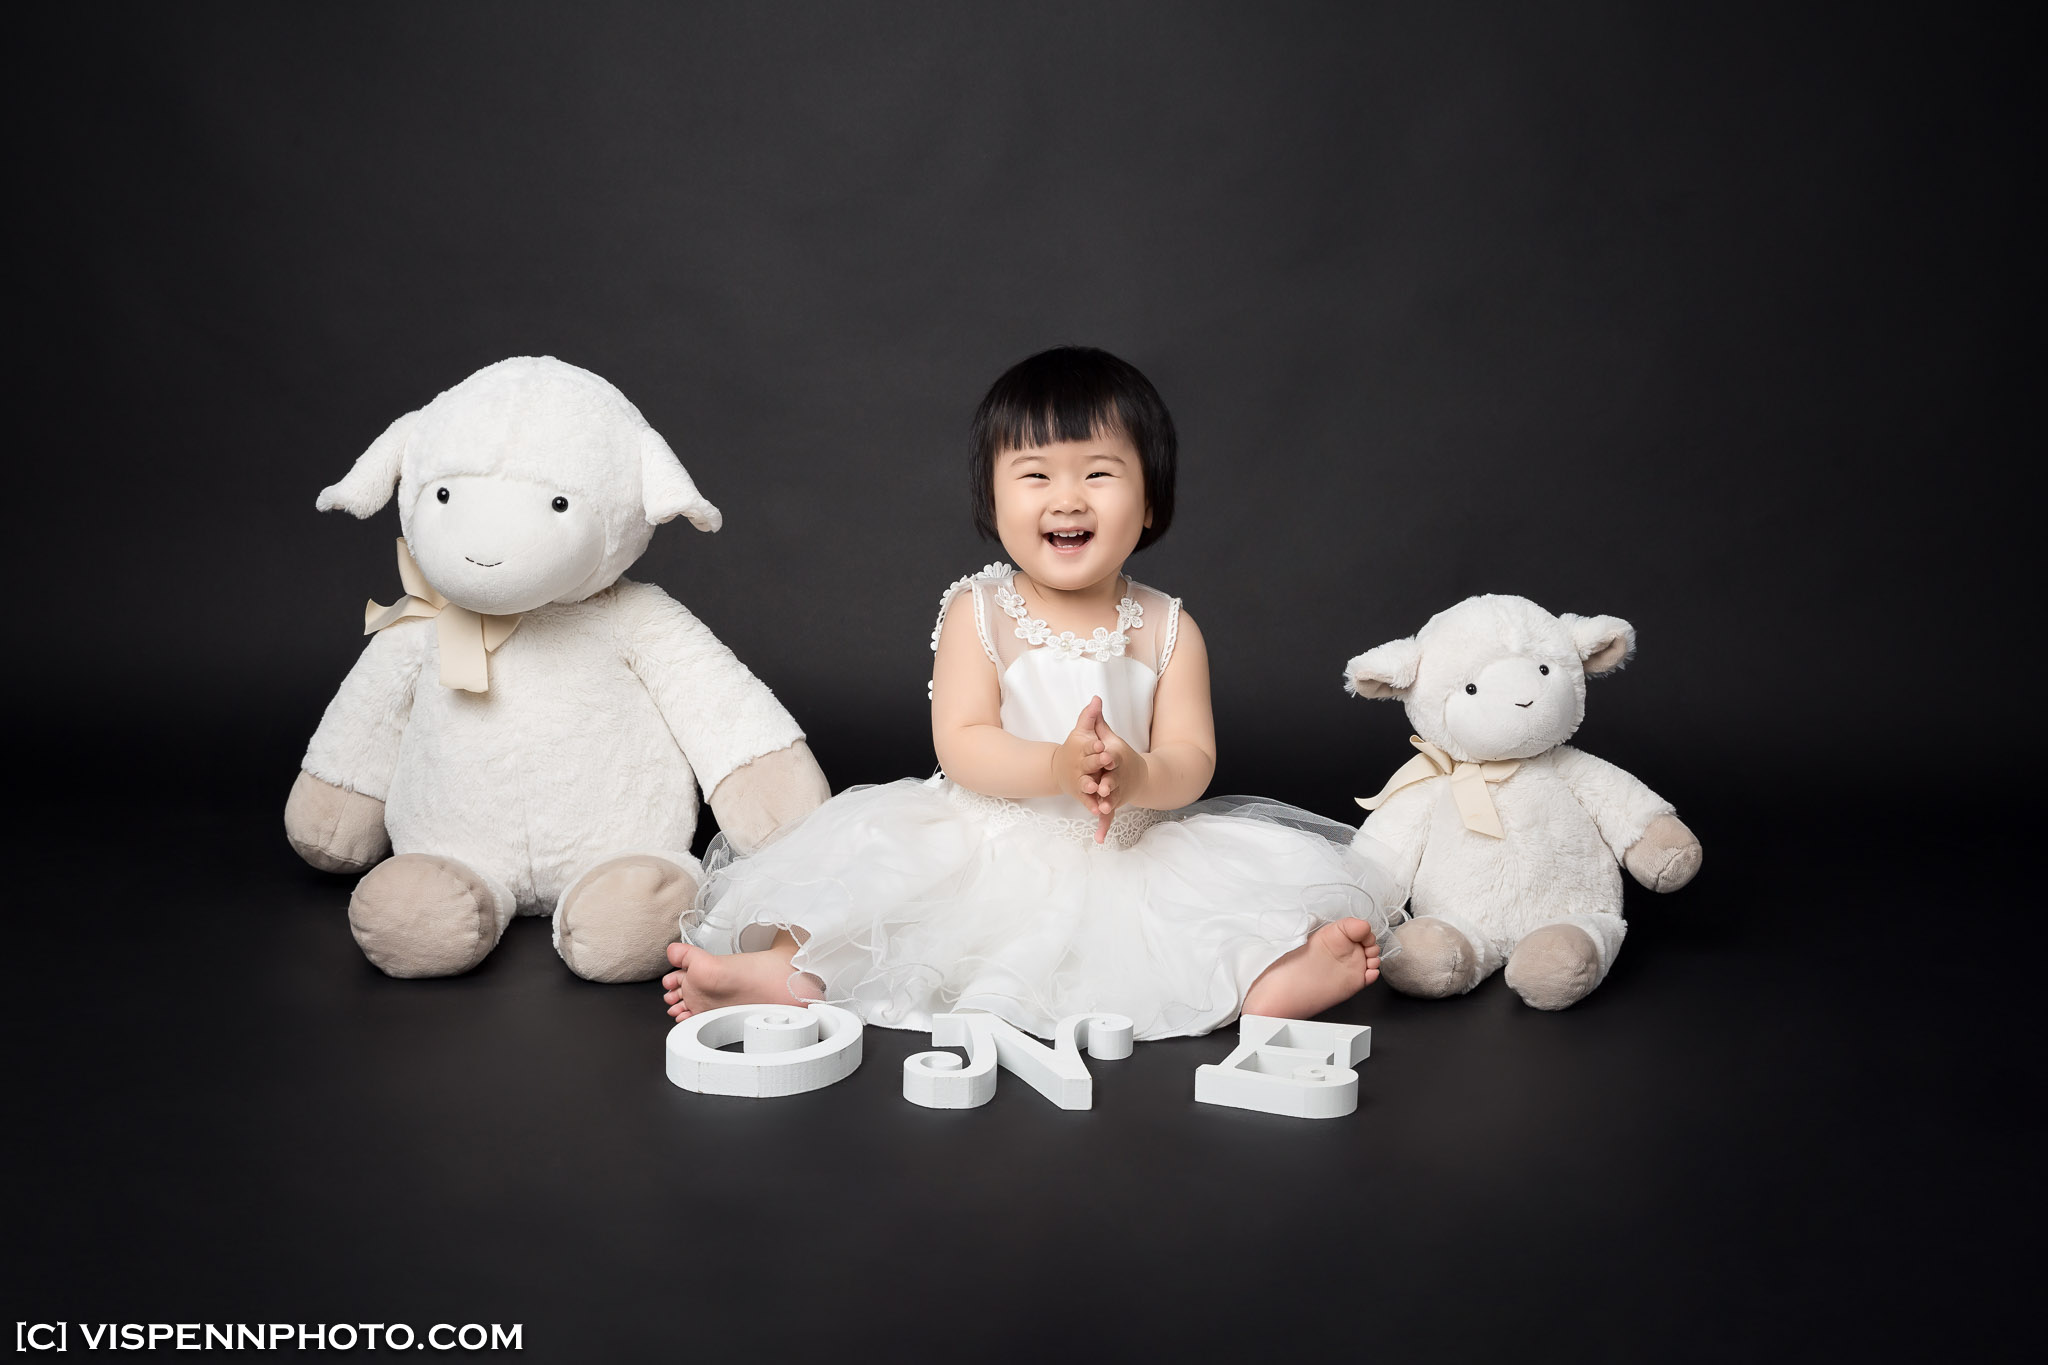 Melbourne Newborn Baby Family Photo BaoBao VISPENN 墨尔本 儿童 宝宝 百天照 满月照 孕妇照 全家福 KIDS AmyBAI 1316 VISPENN